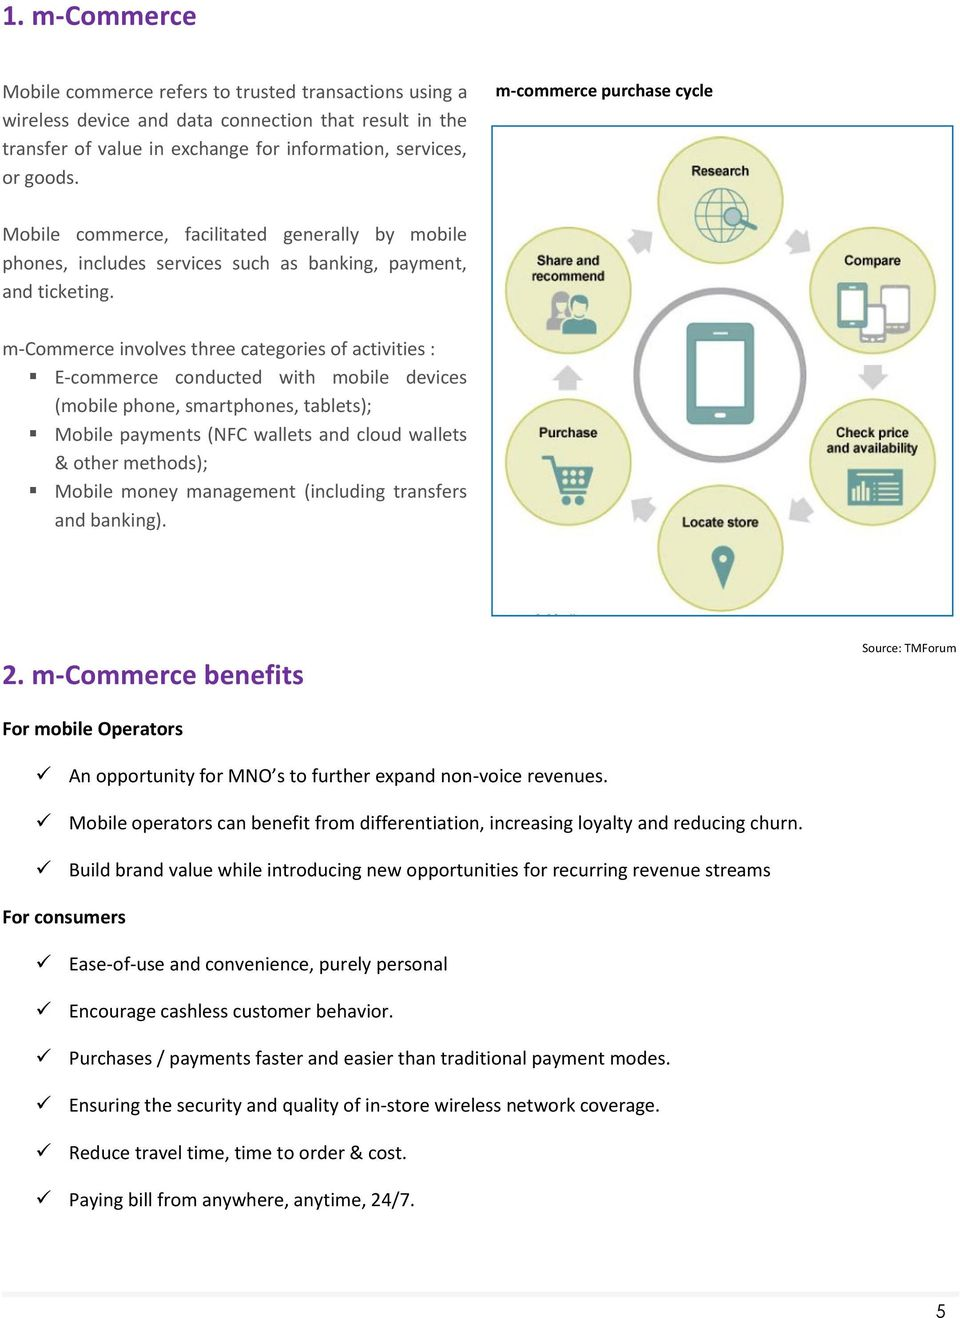 m-commerce involves three categories of activities : E-commerce conducted with mobile devices (mobile phone, smartphones, tablets); Mobile payments (NFC wallets and cloud wallets & other methods);